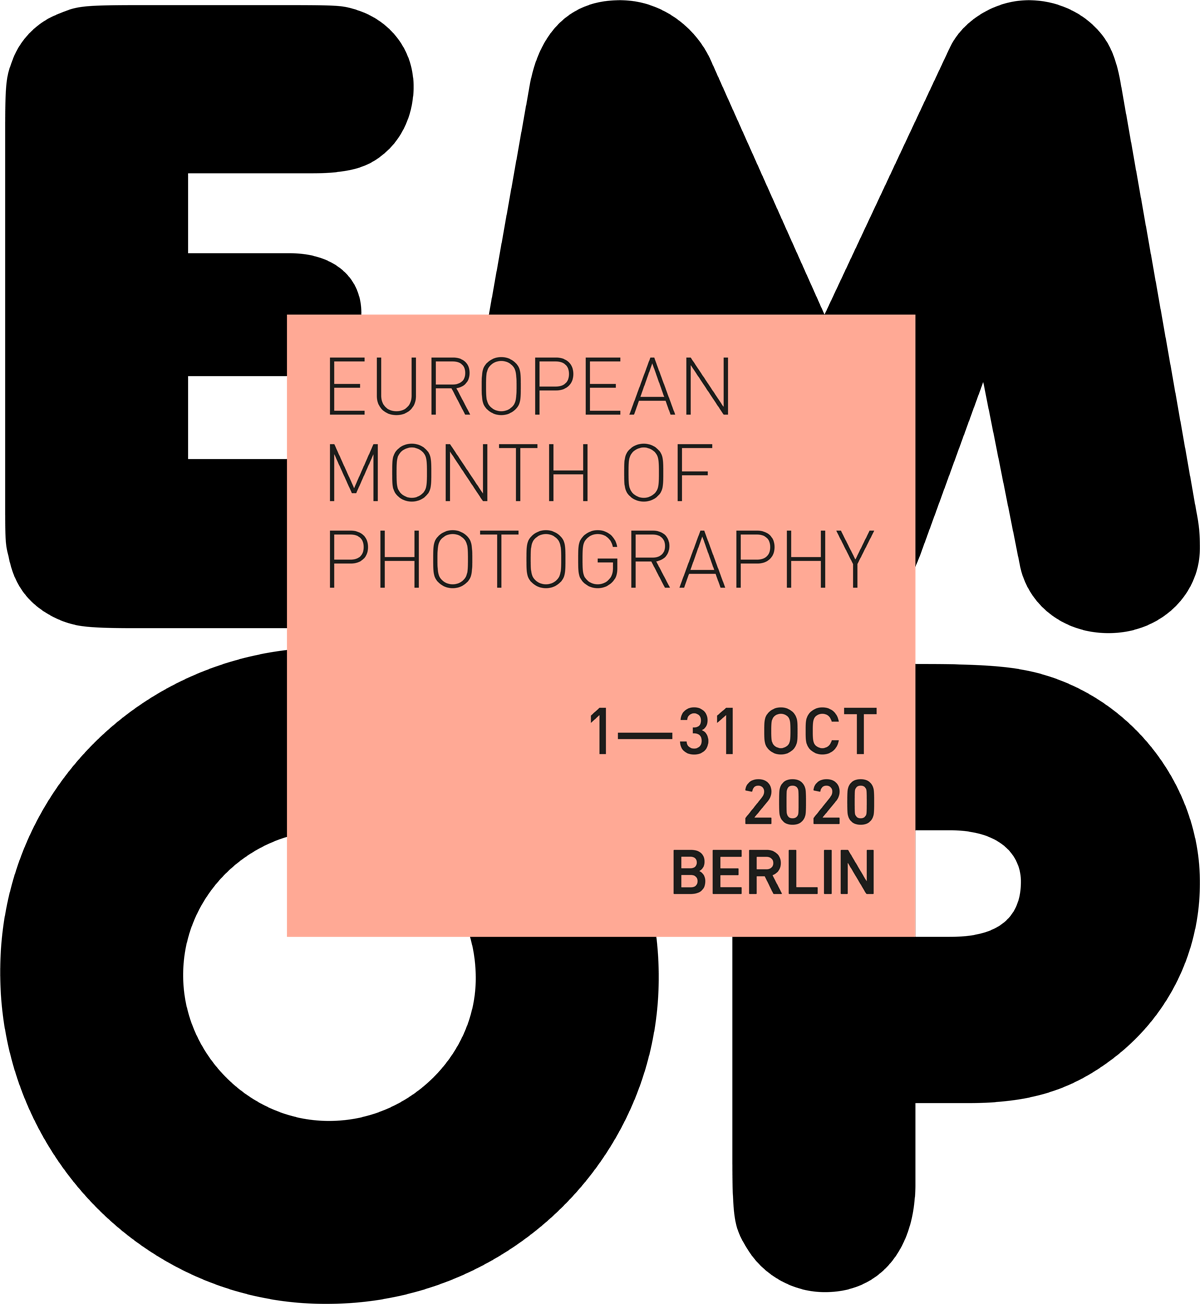 EMOP Berlin – European Month Of Photography 2020